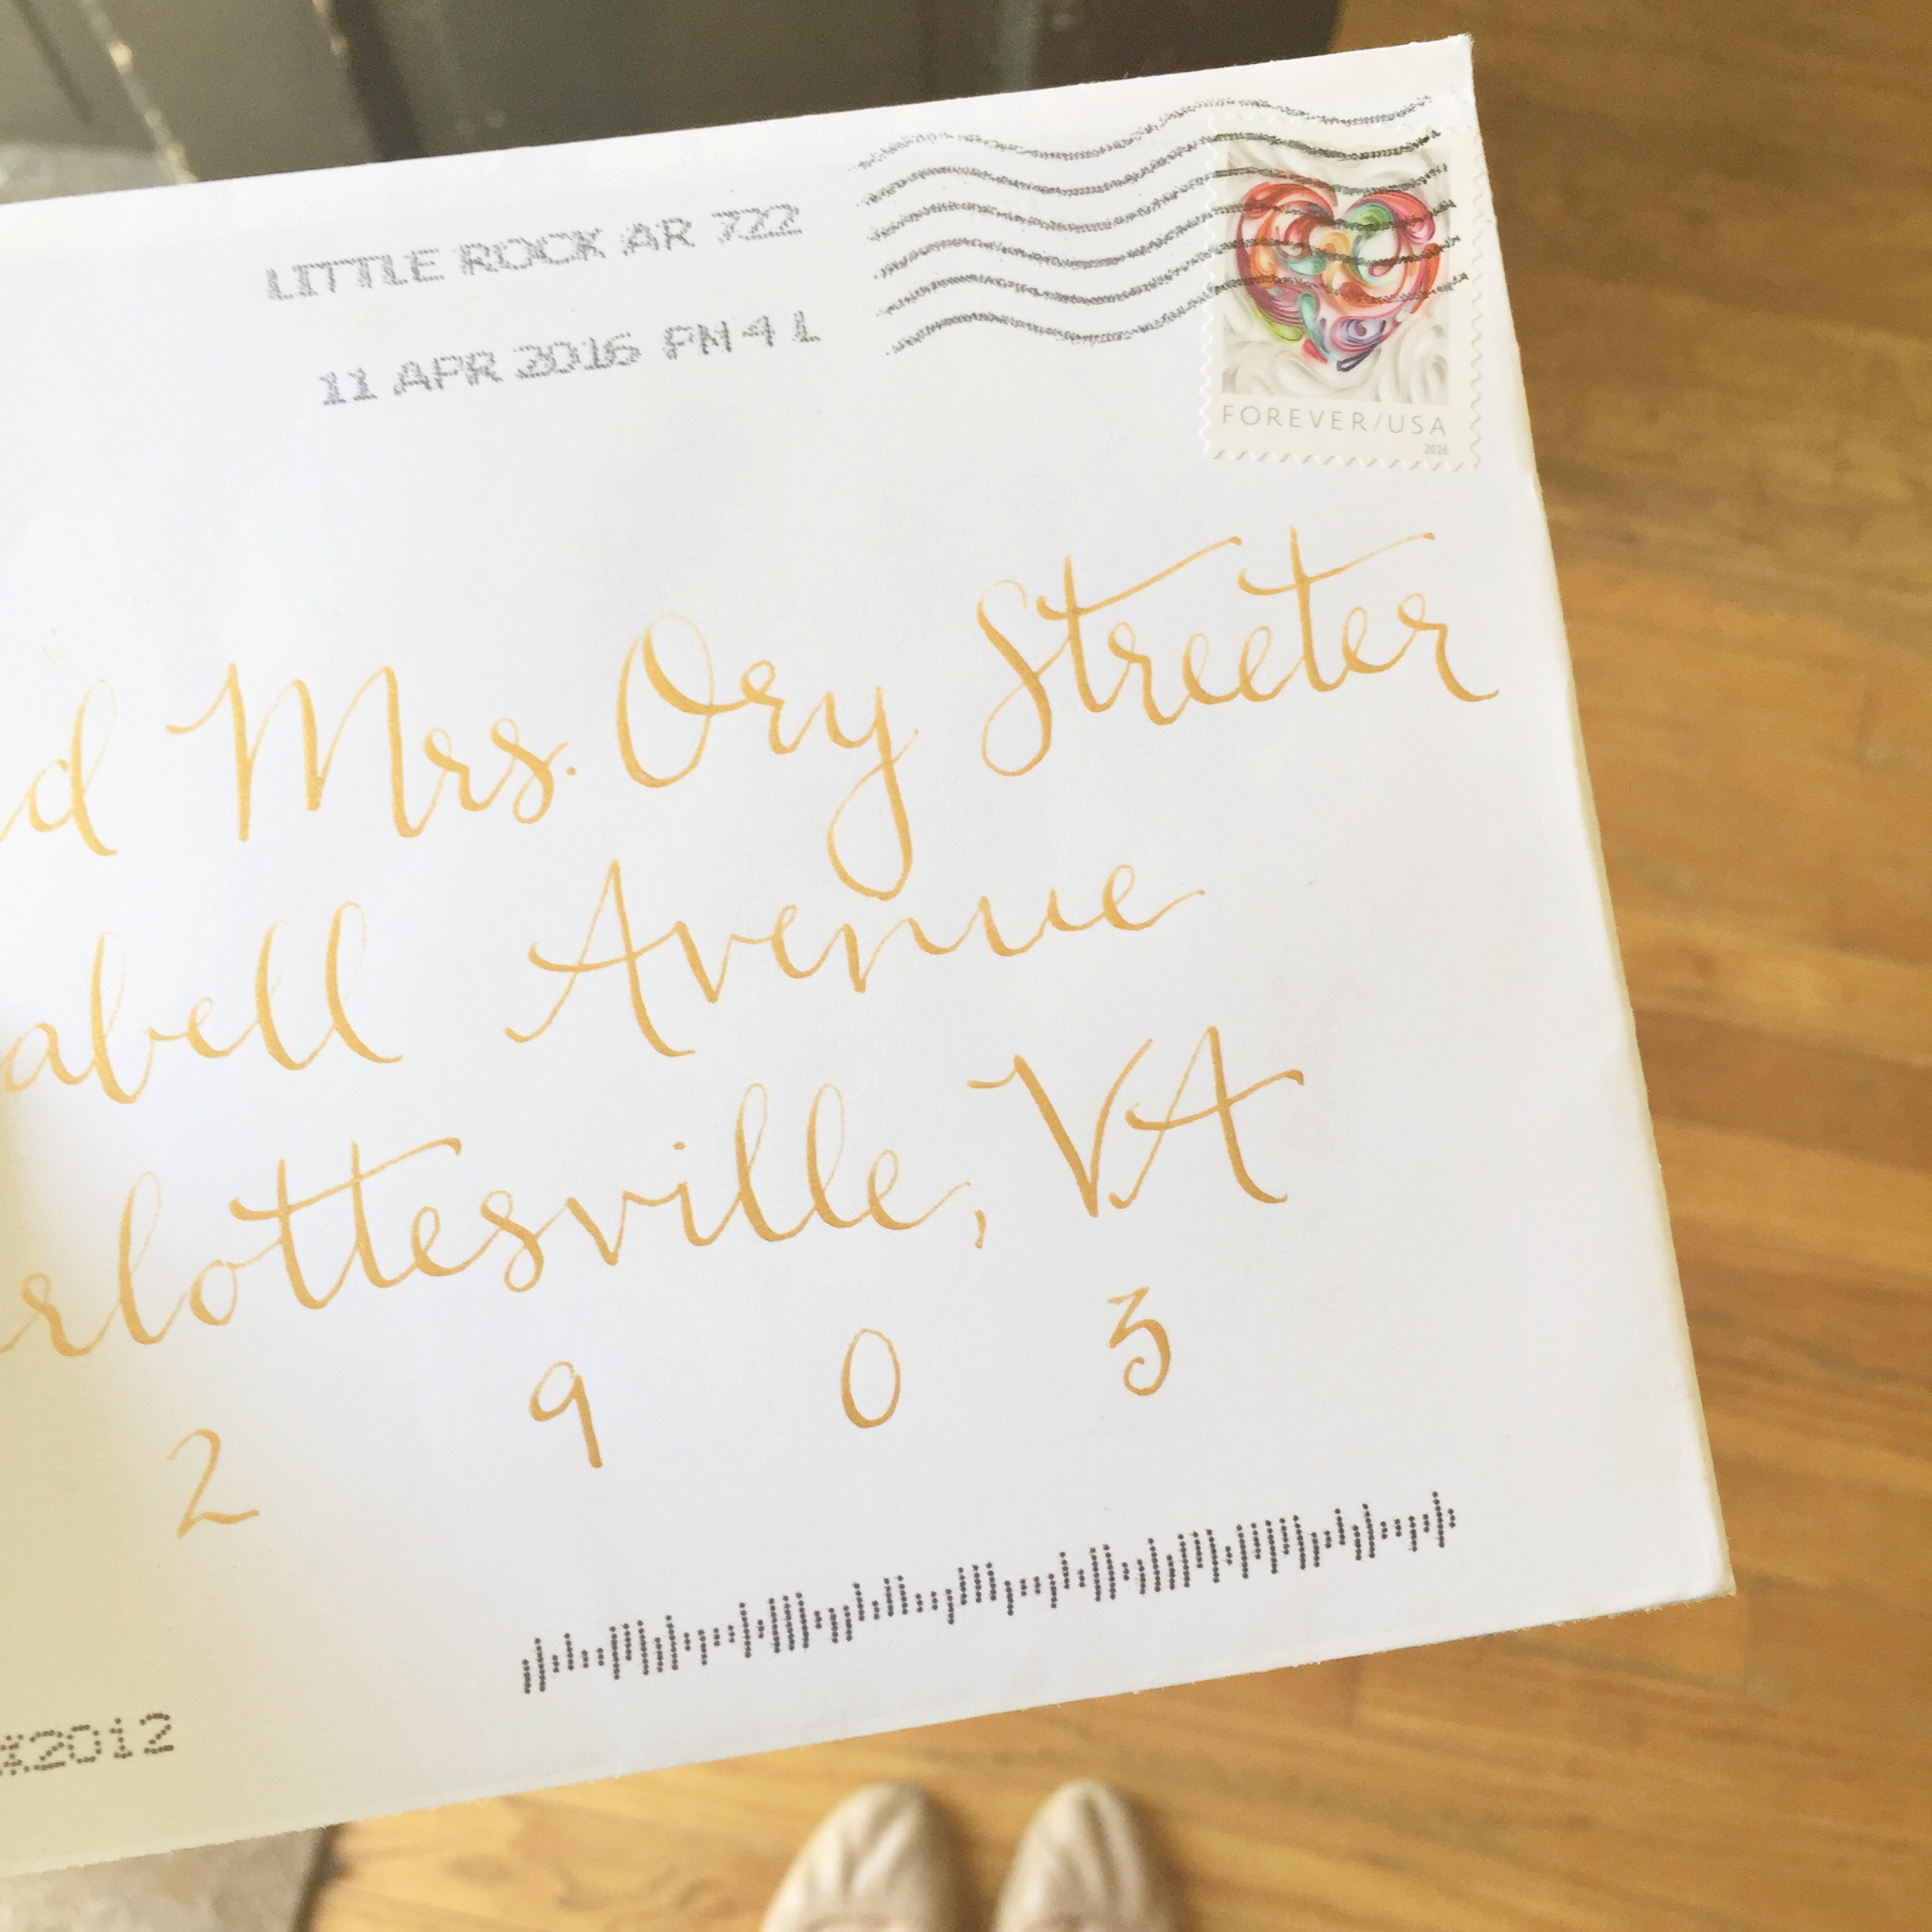 It was such an exciting day to receive Morgan's wedding invitation in the mail!